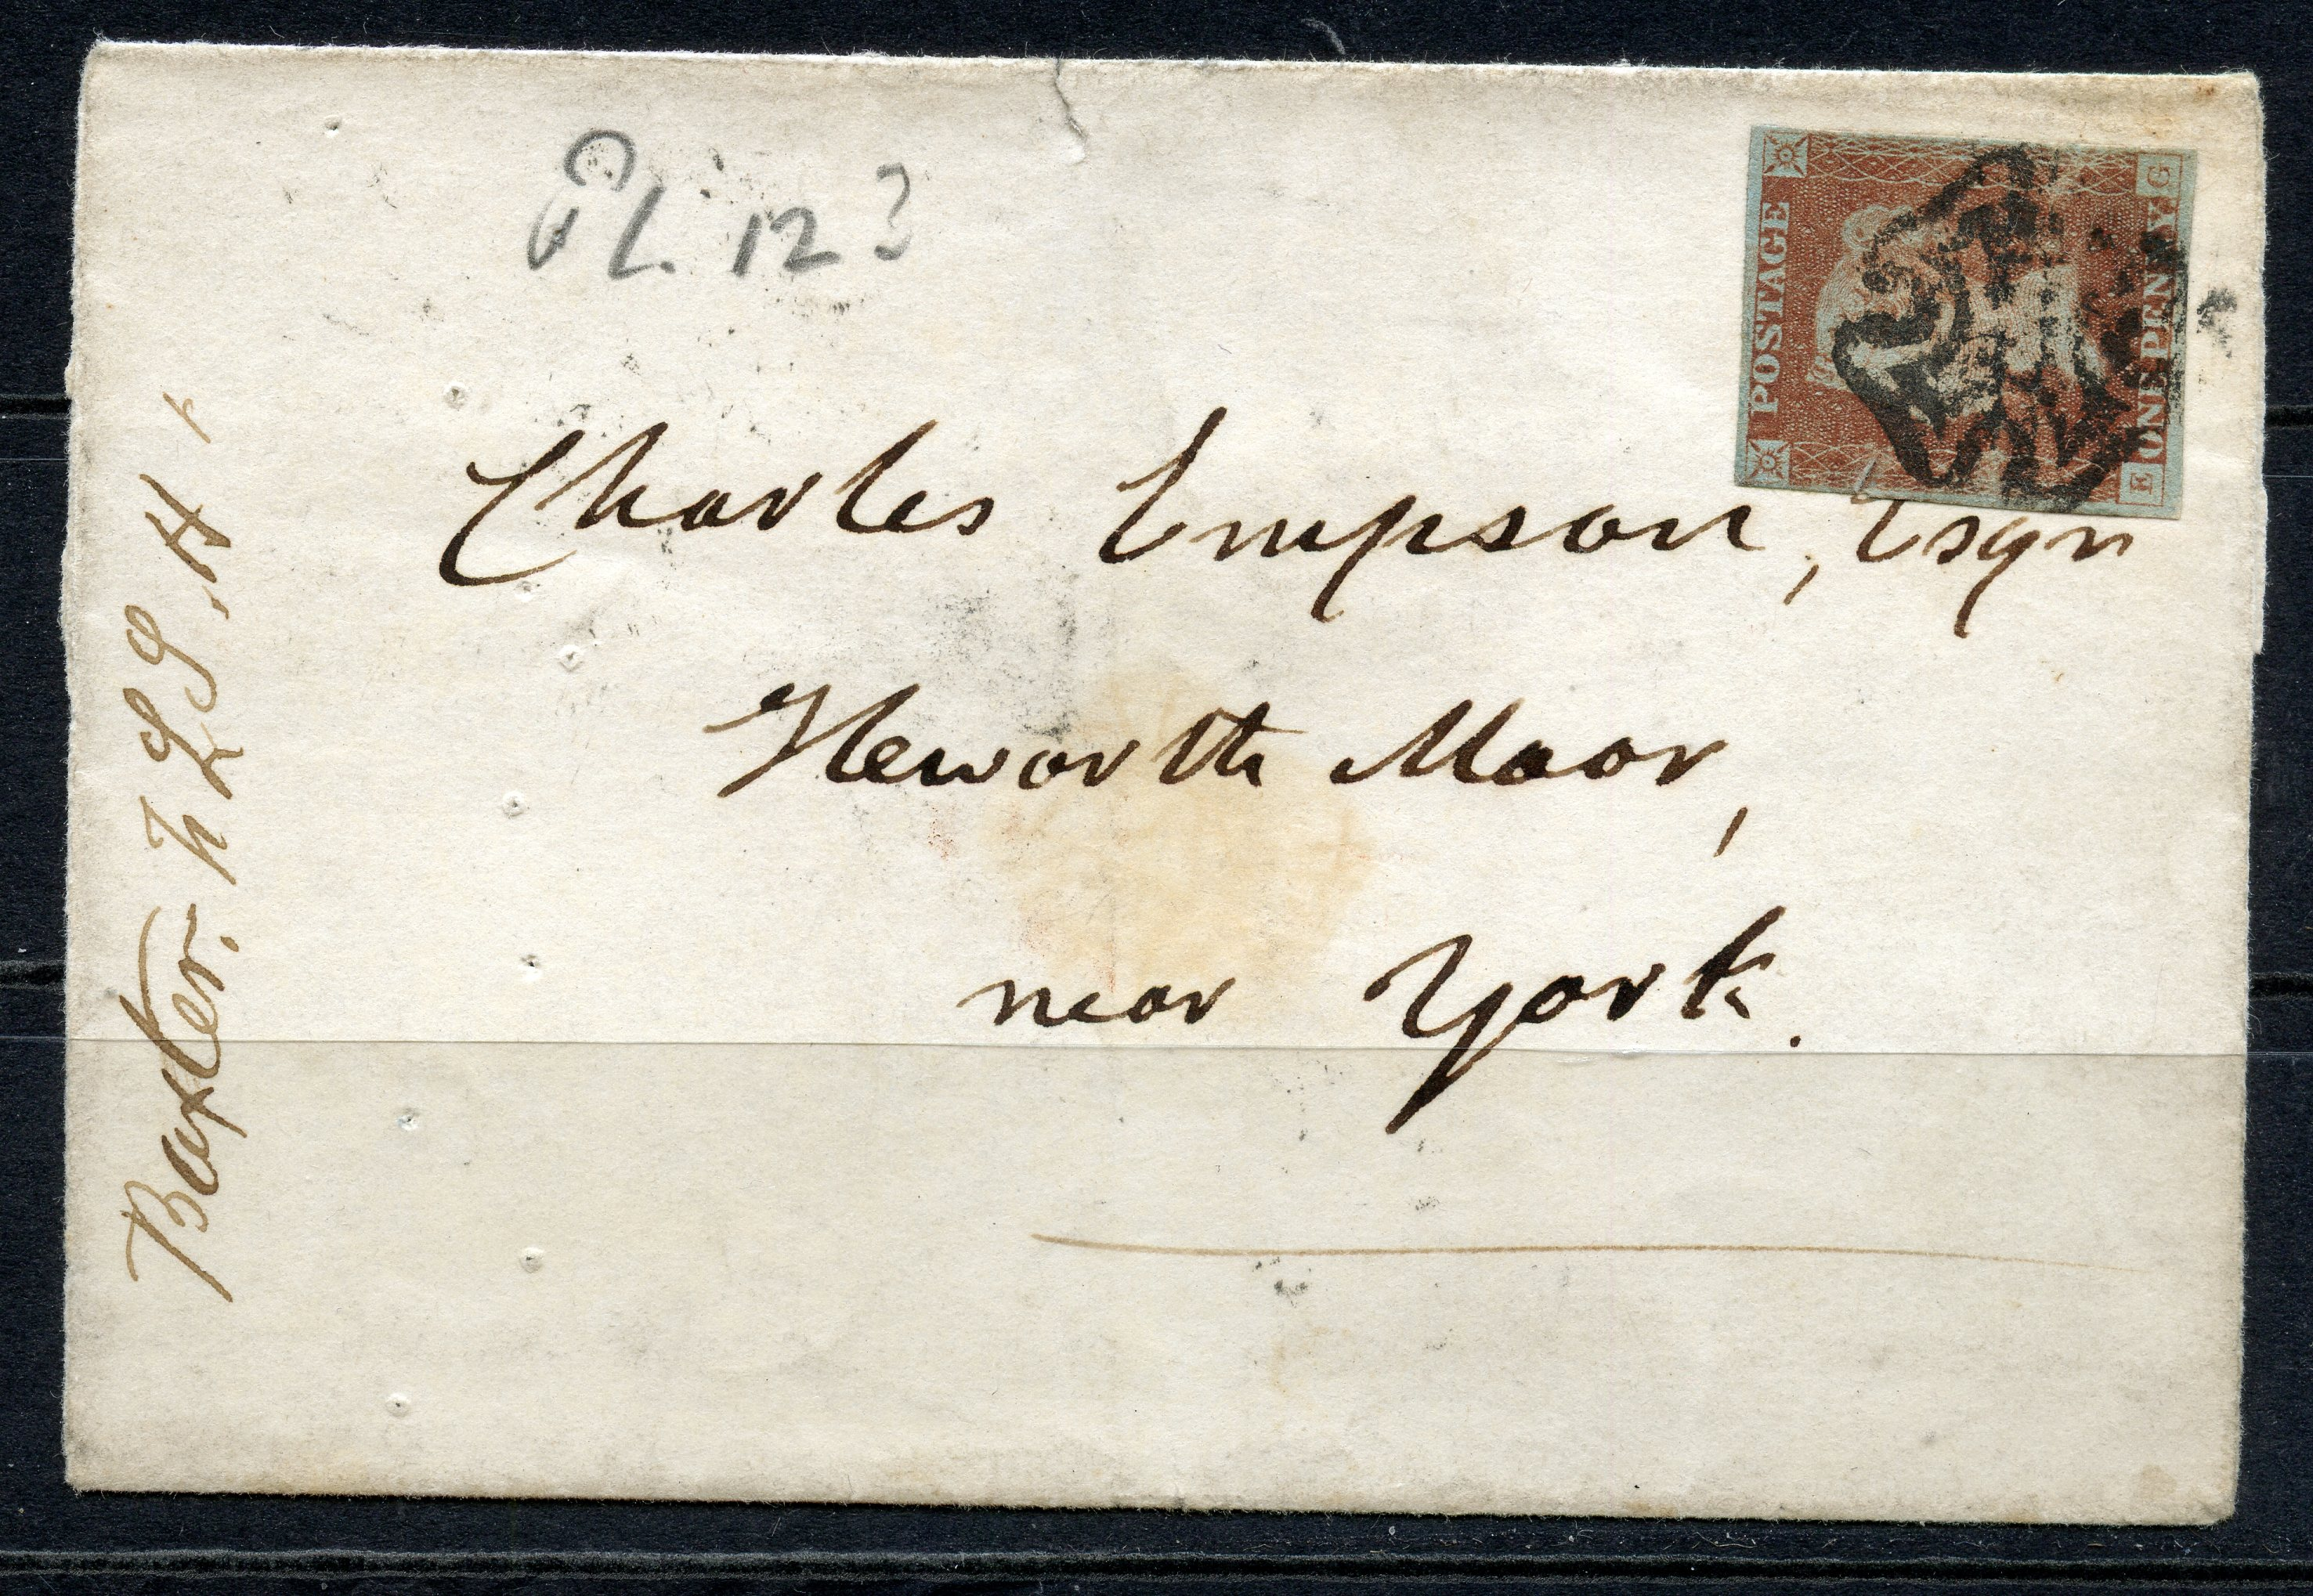 POSTAL HISTORY 1841 Oxford to York wrapper franked with 1d red imperf 4 margin stated to be plate 12